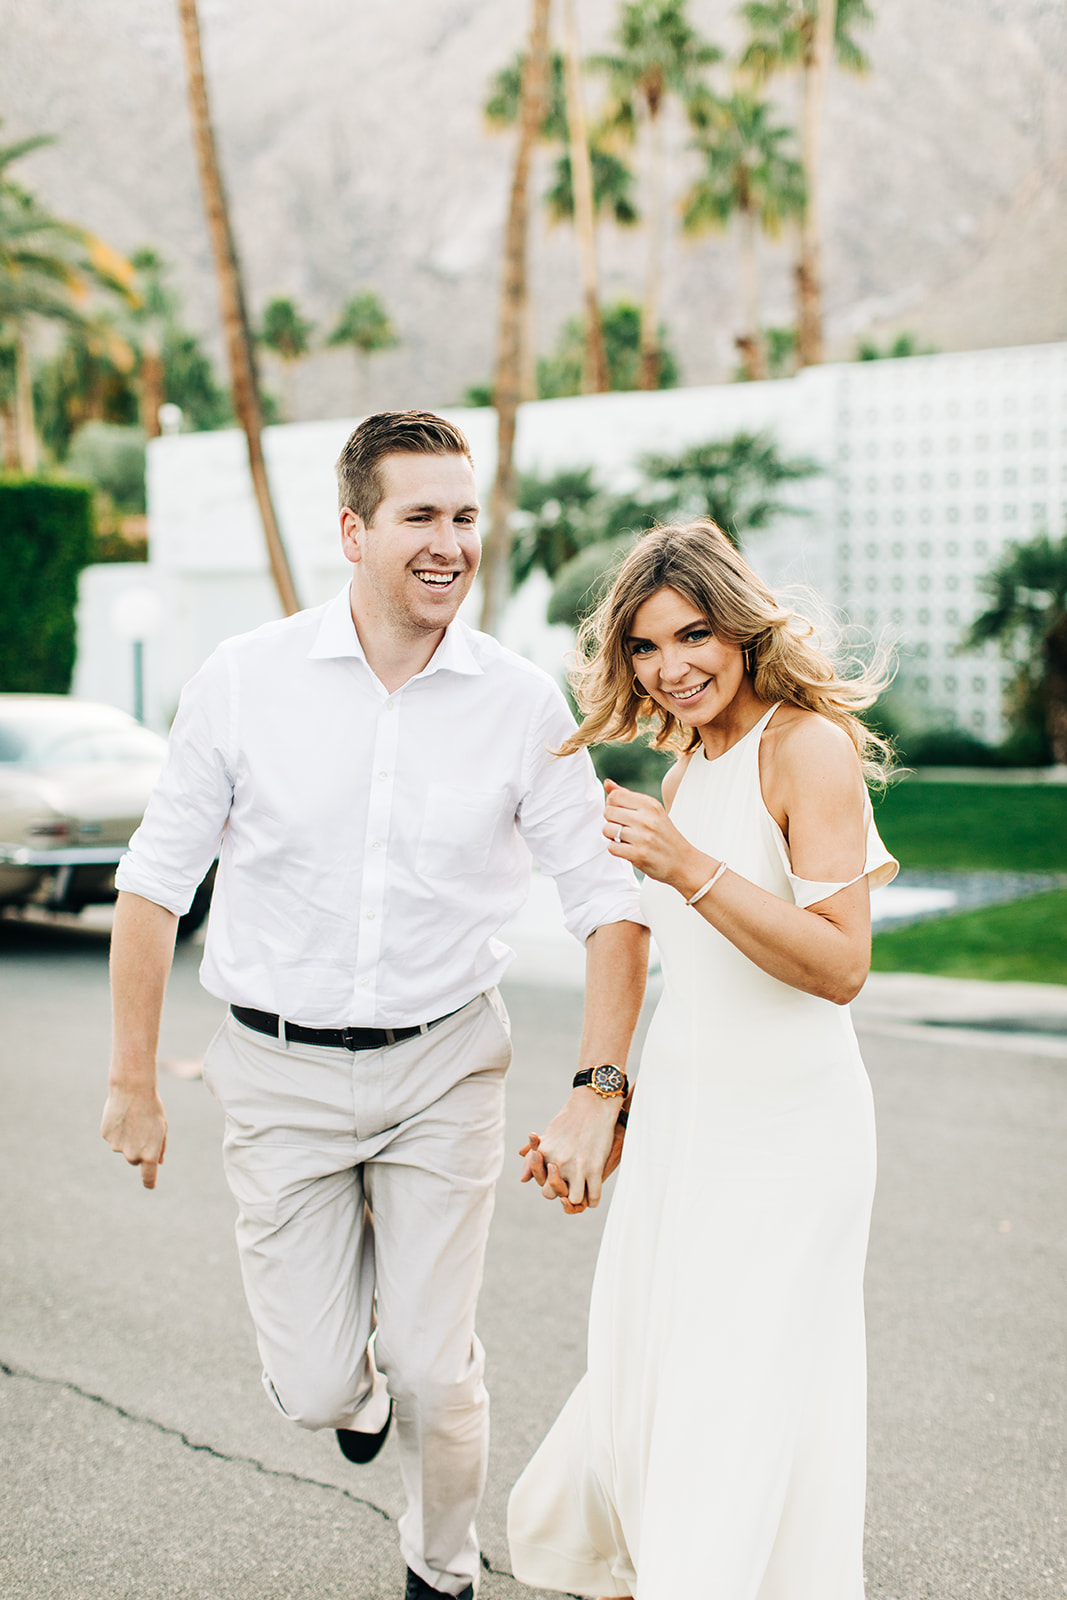 Paulina-Drew_Palm-Springs-Engagement-Photos_Clarisse-Rae_Southern-California-Wedding-Photographer-26